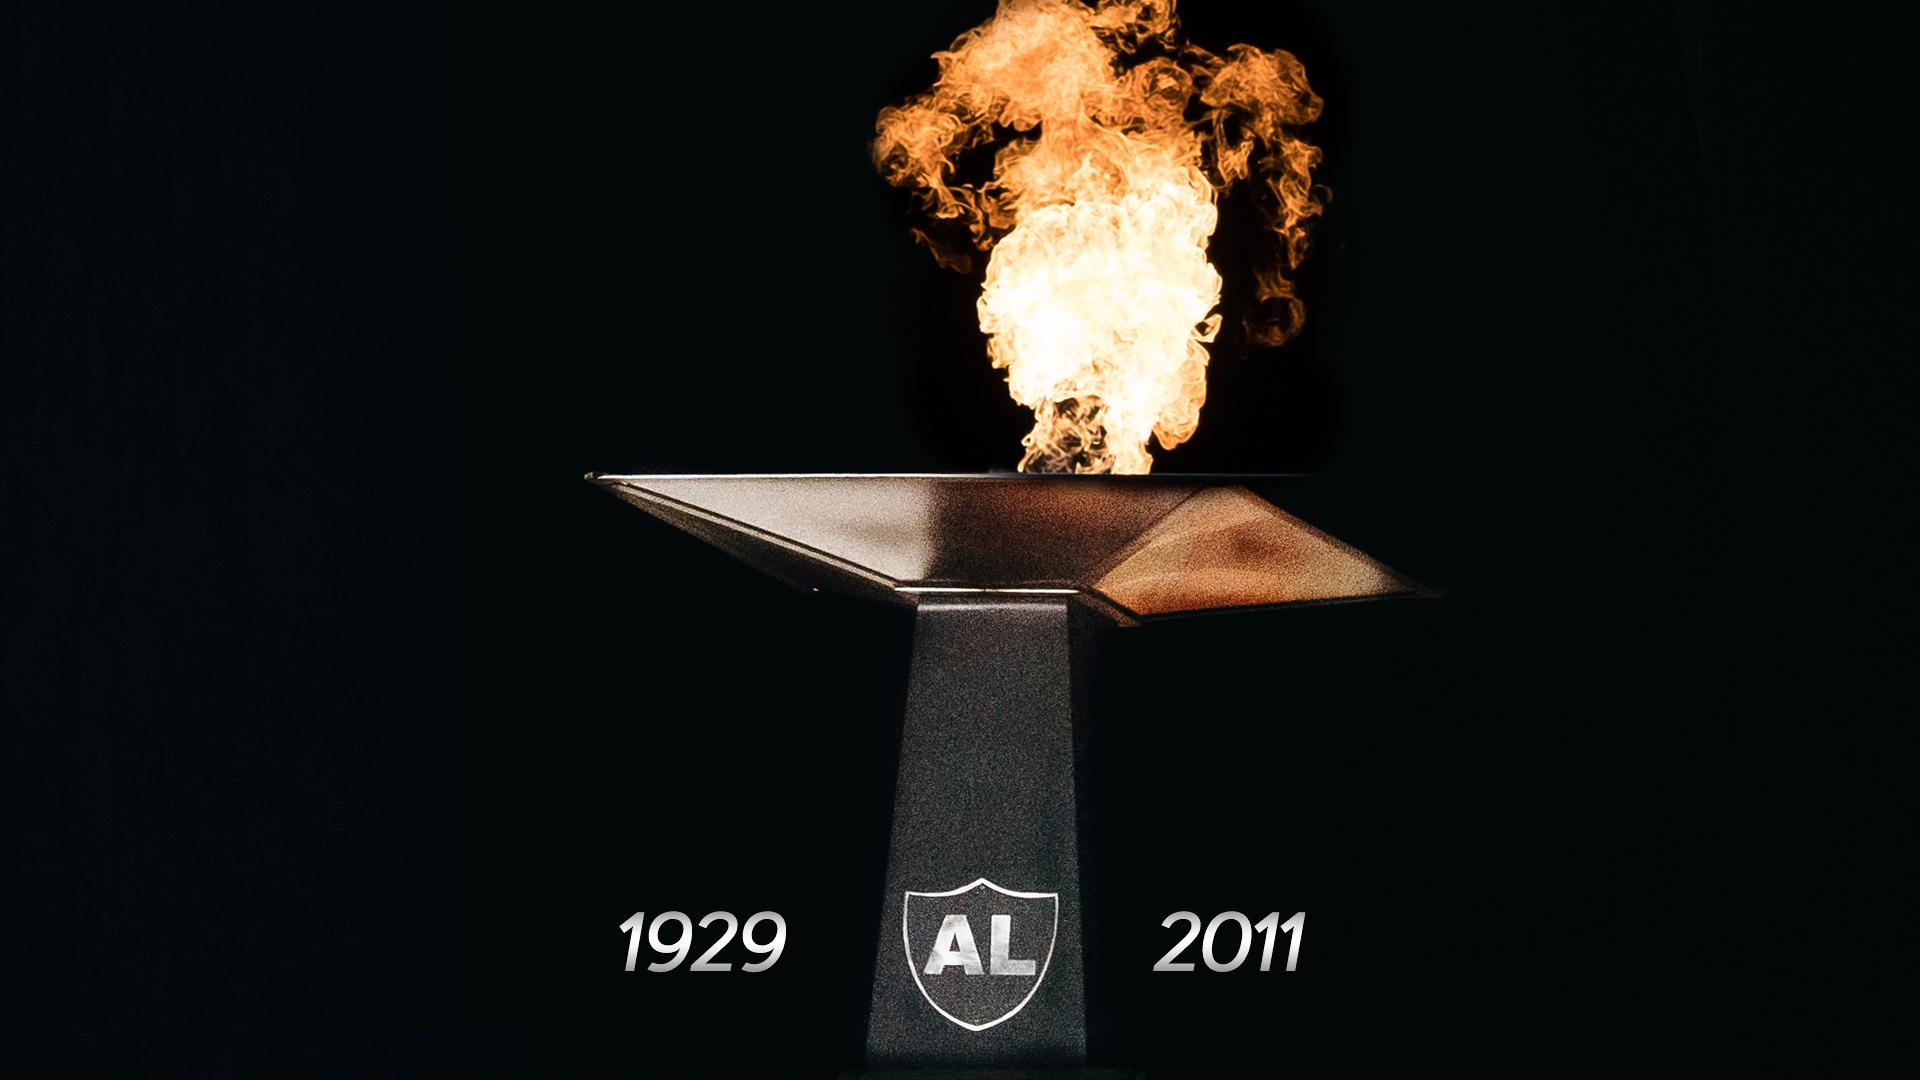 On this date seven years ago, we lost an icon and a legend.  Rest In Peace, Al. #RaiderNation https://t.co/znaqFIw1Fh